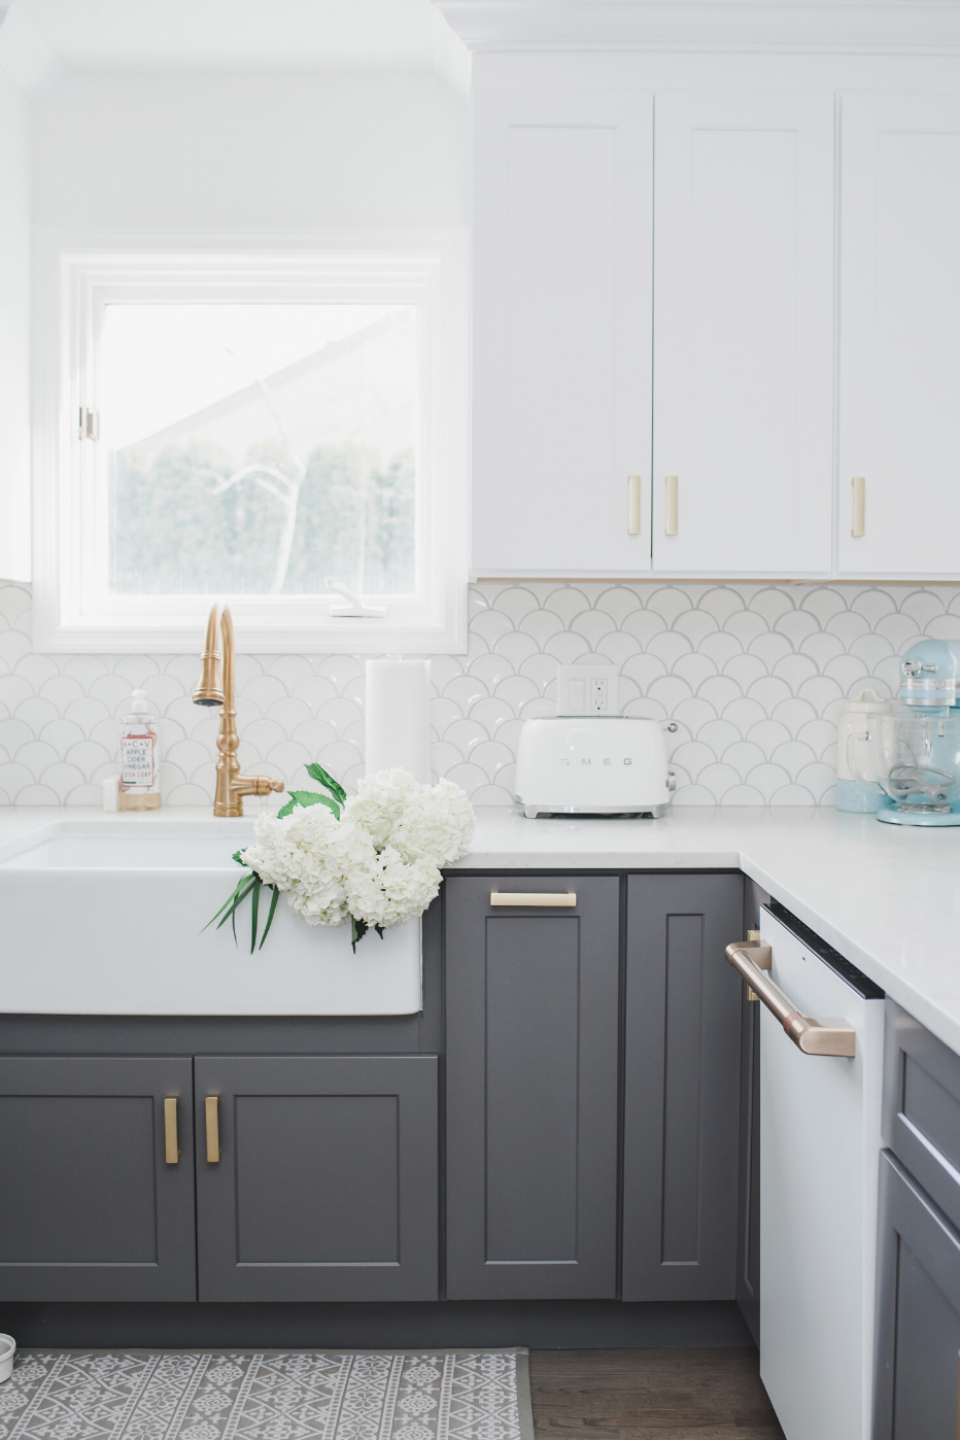 Check Out My White And Gold Cozy Coastal Kitchen And My Cafe Appliances I Love The Matte White In 2020 Home Decor Kitchen Grey Kitchen Designs Kitchen Cabinet Design